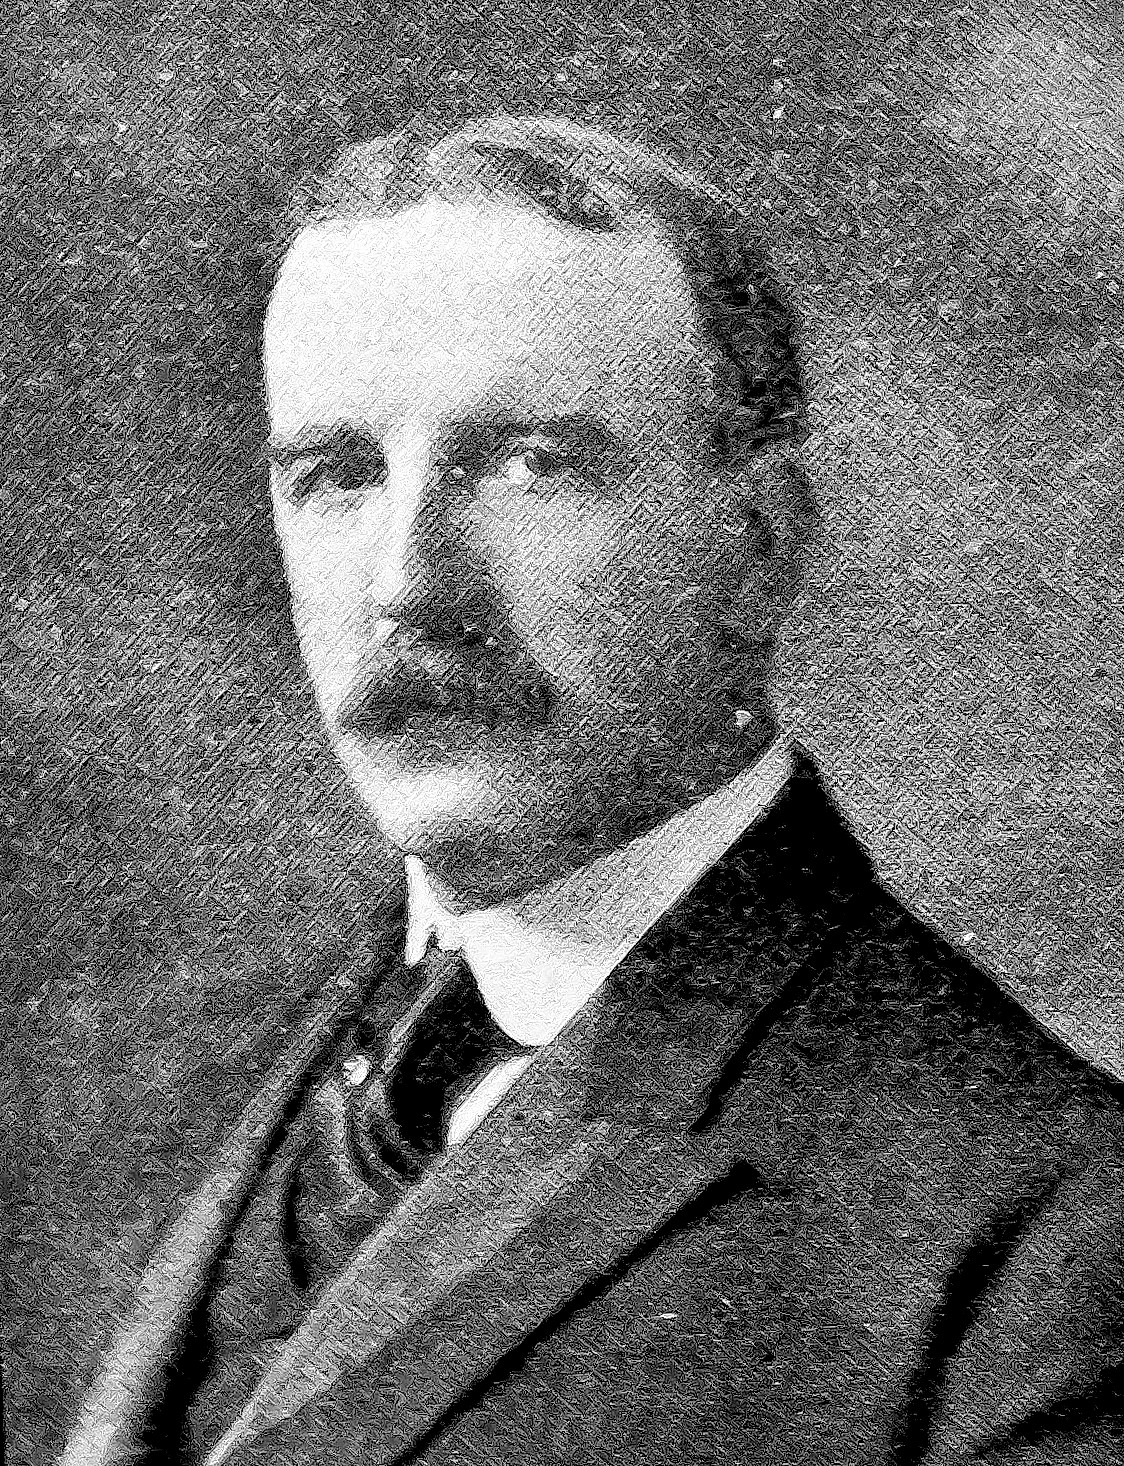 Bronx Borough President Douglas Mathewson in 1914.